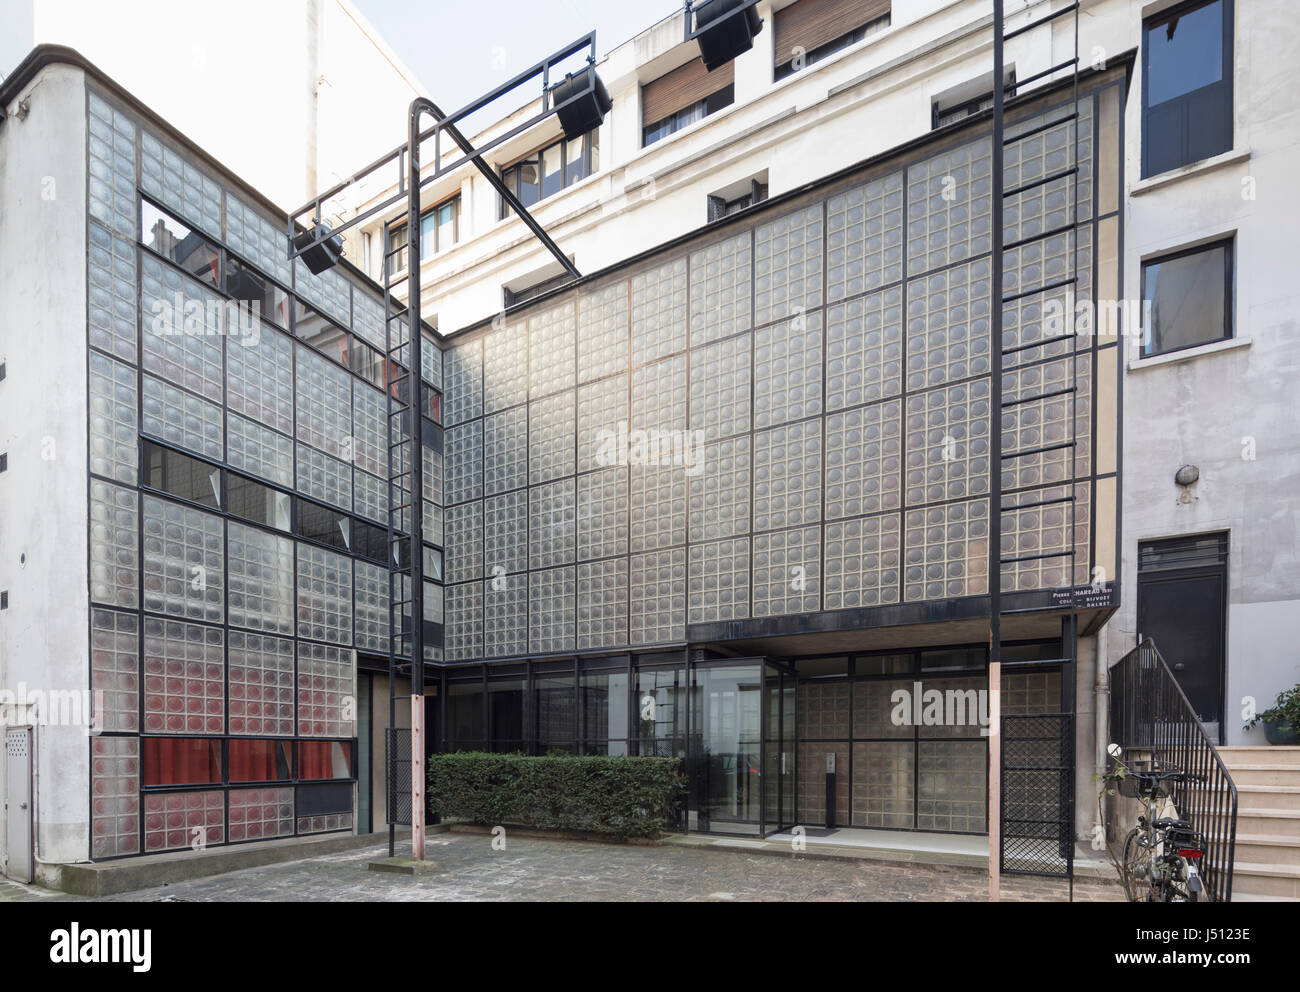 exterior facade maison de verre house of glass paris france stock photo 140779842 alamy. Black Bedroom Furniture Sets. Home Design Ideas